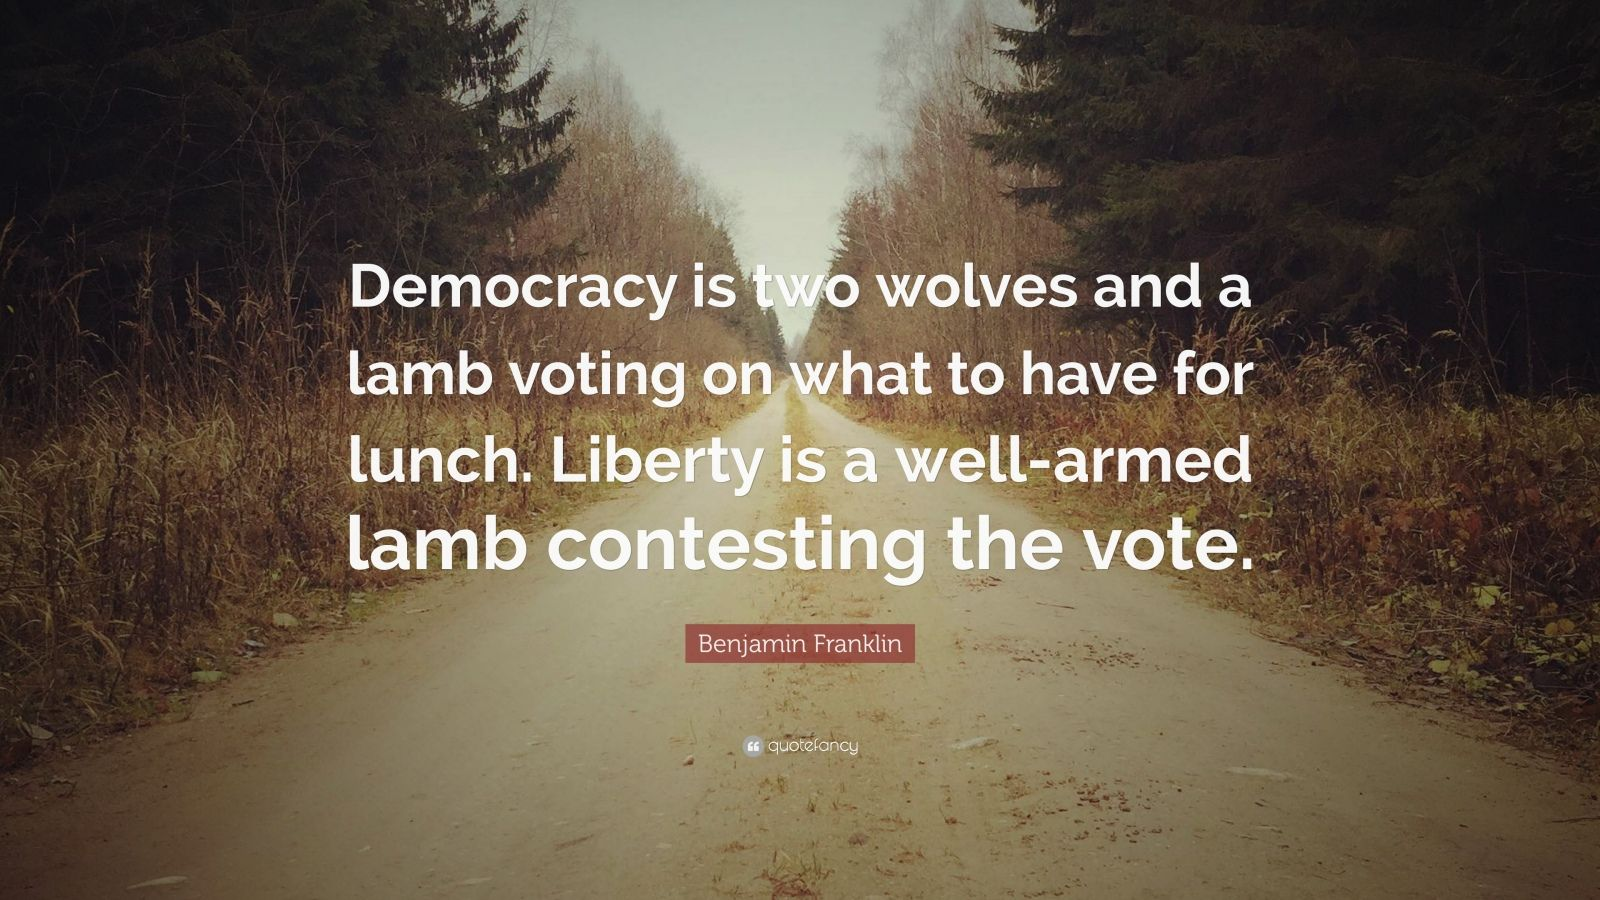 """Benjamin Franklin Quote: """"Democracy is two wolves and a lamb voting on what to have for lunch. Liberty is a well-armed lamb contesting the vote."""""""